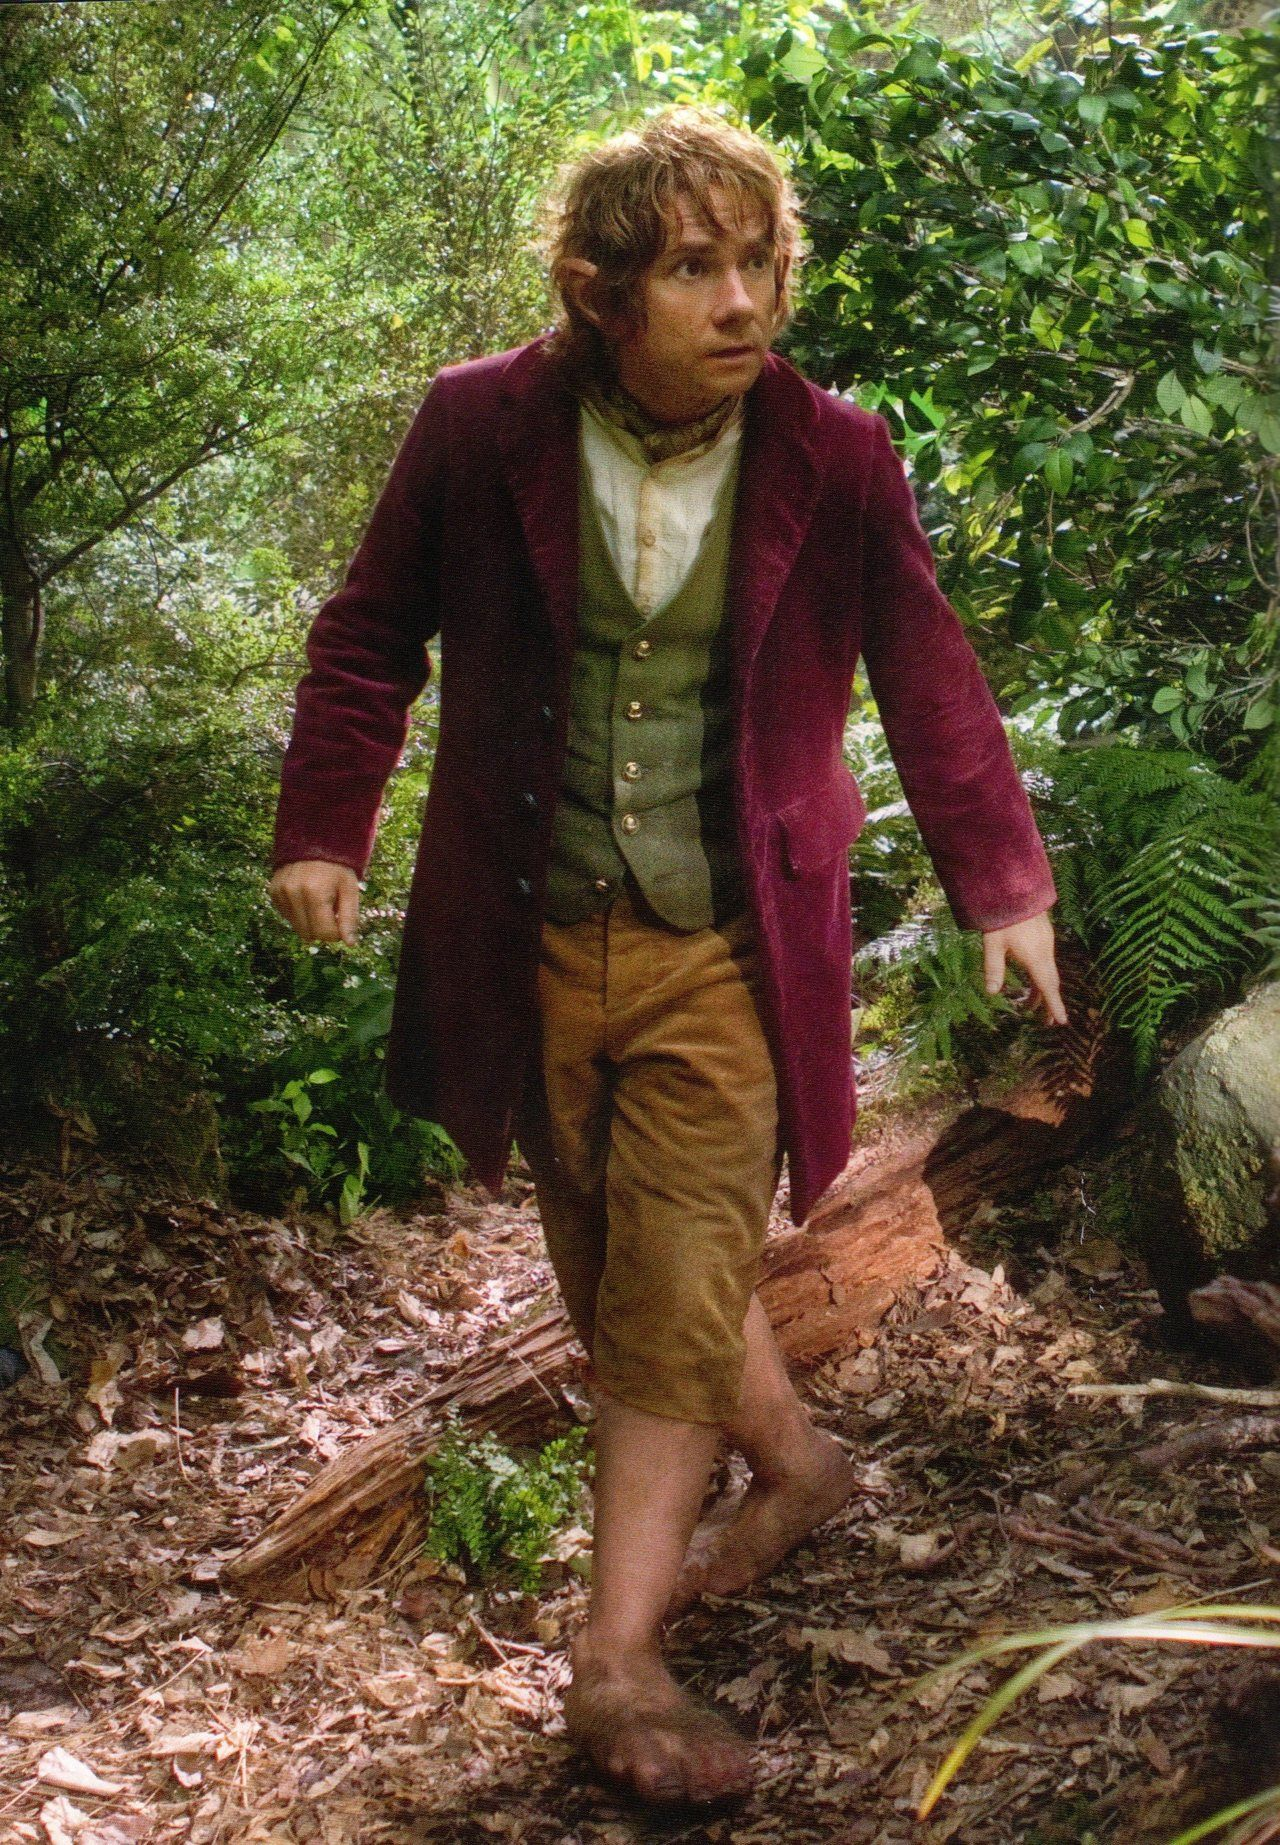 Bilbo Baggins picture from movie